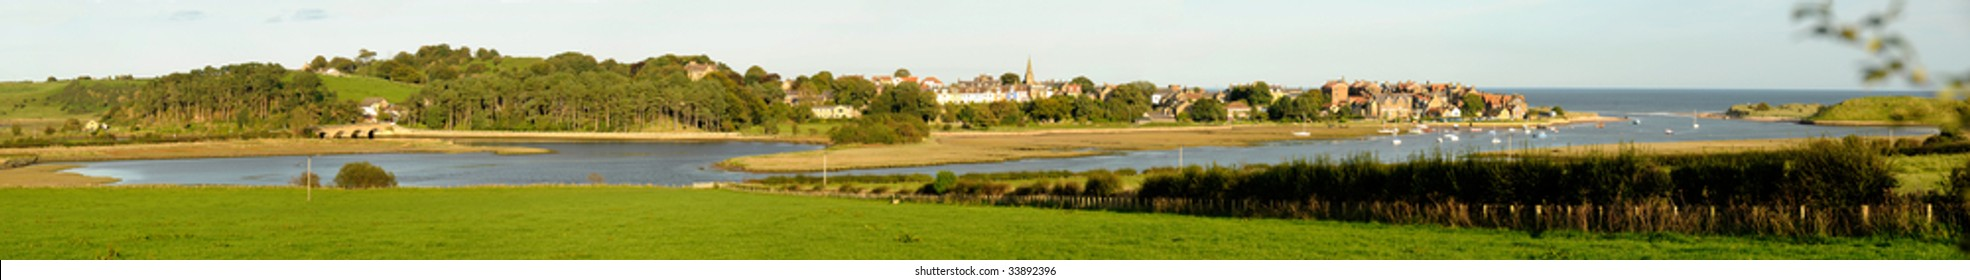 Panarama of the coastal town of Alnmouth in Northumberland, UK